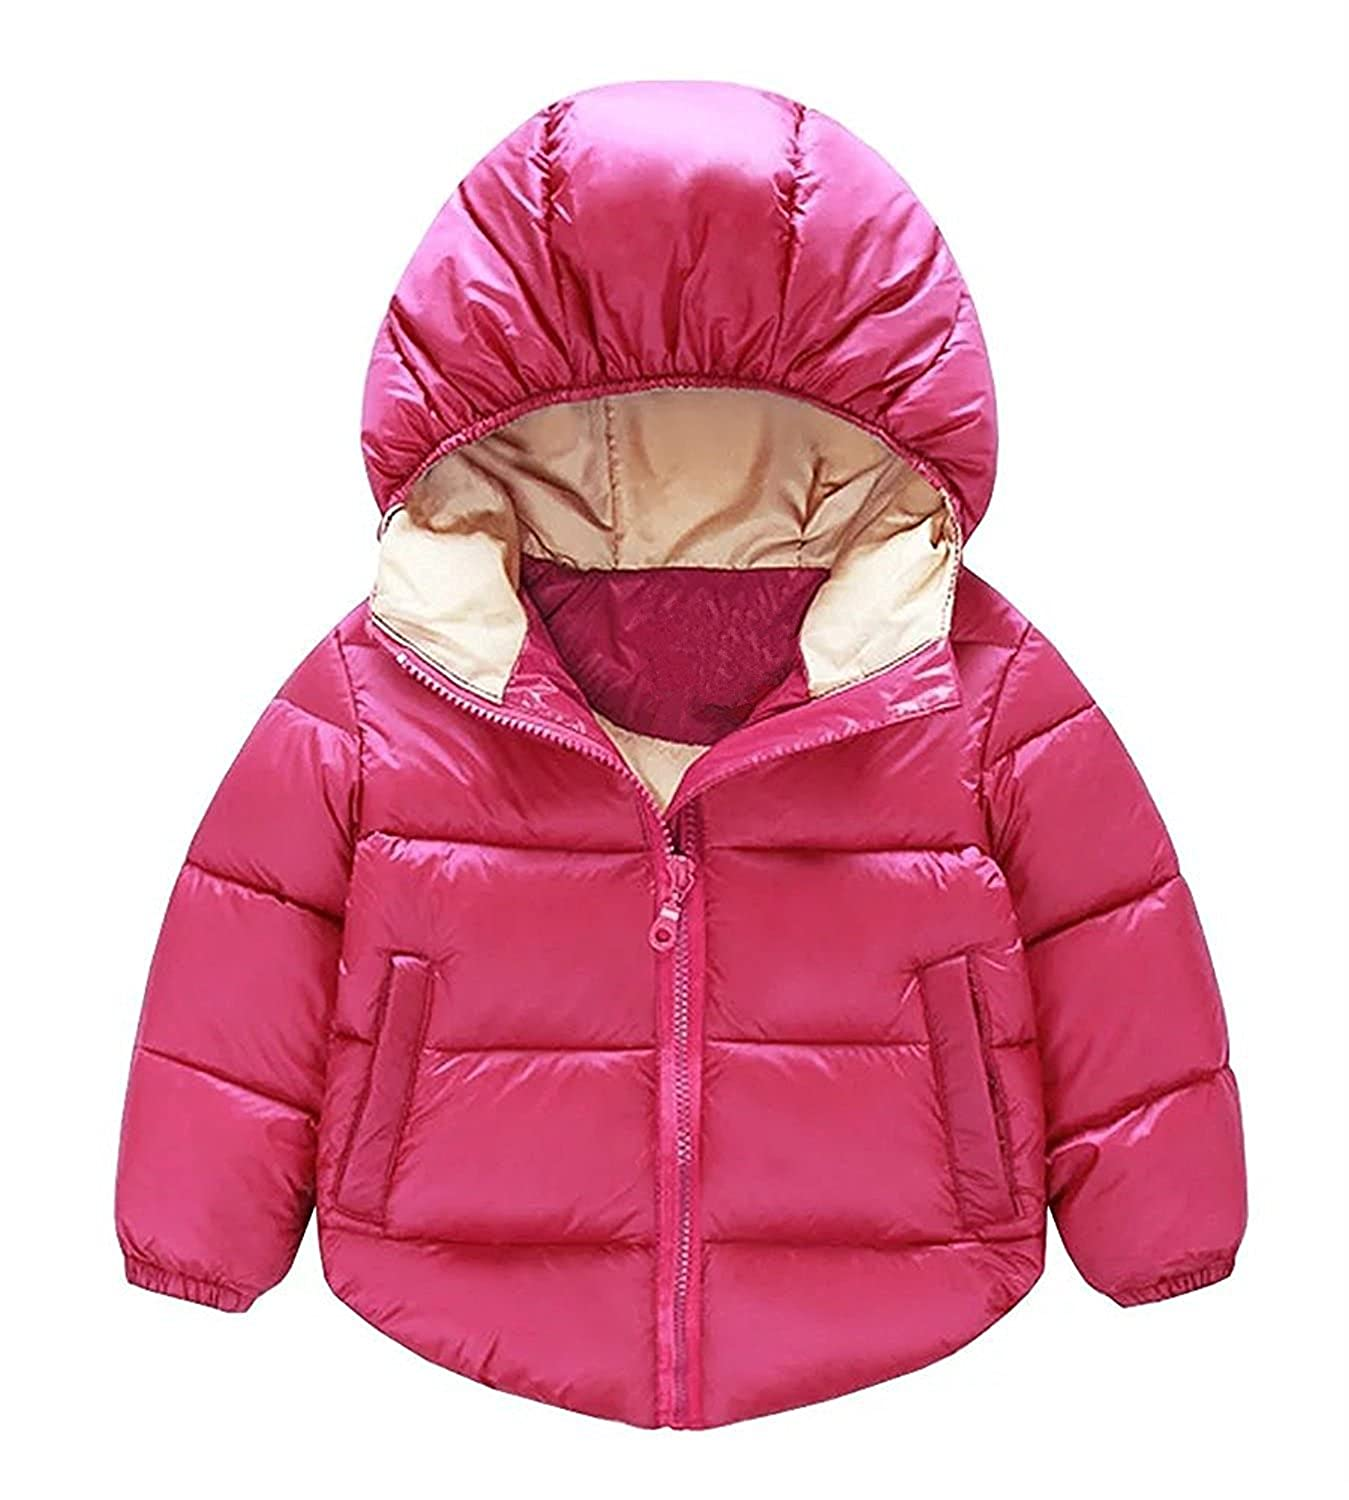 Baby Boys Girls Winter Puffer Cotton-padded Coat Thicken Down Jacket